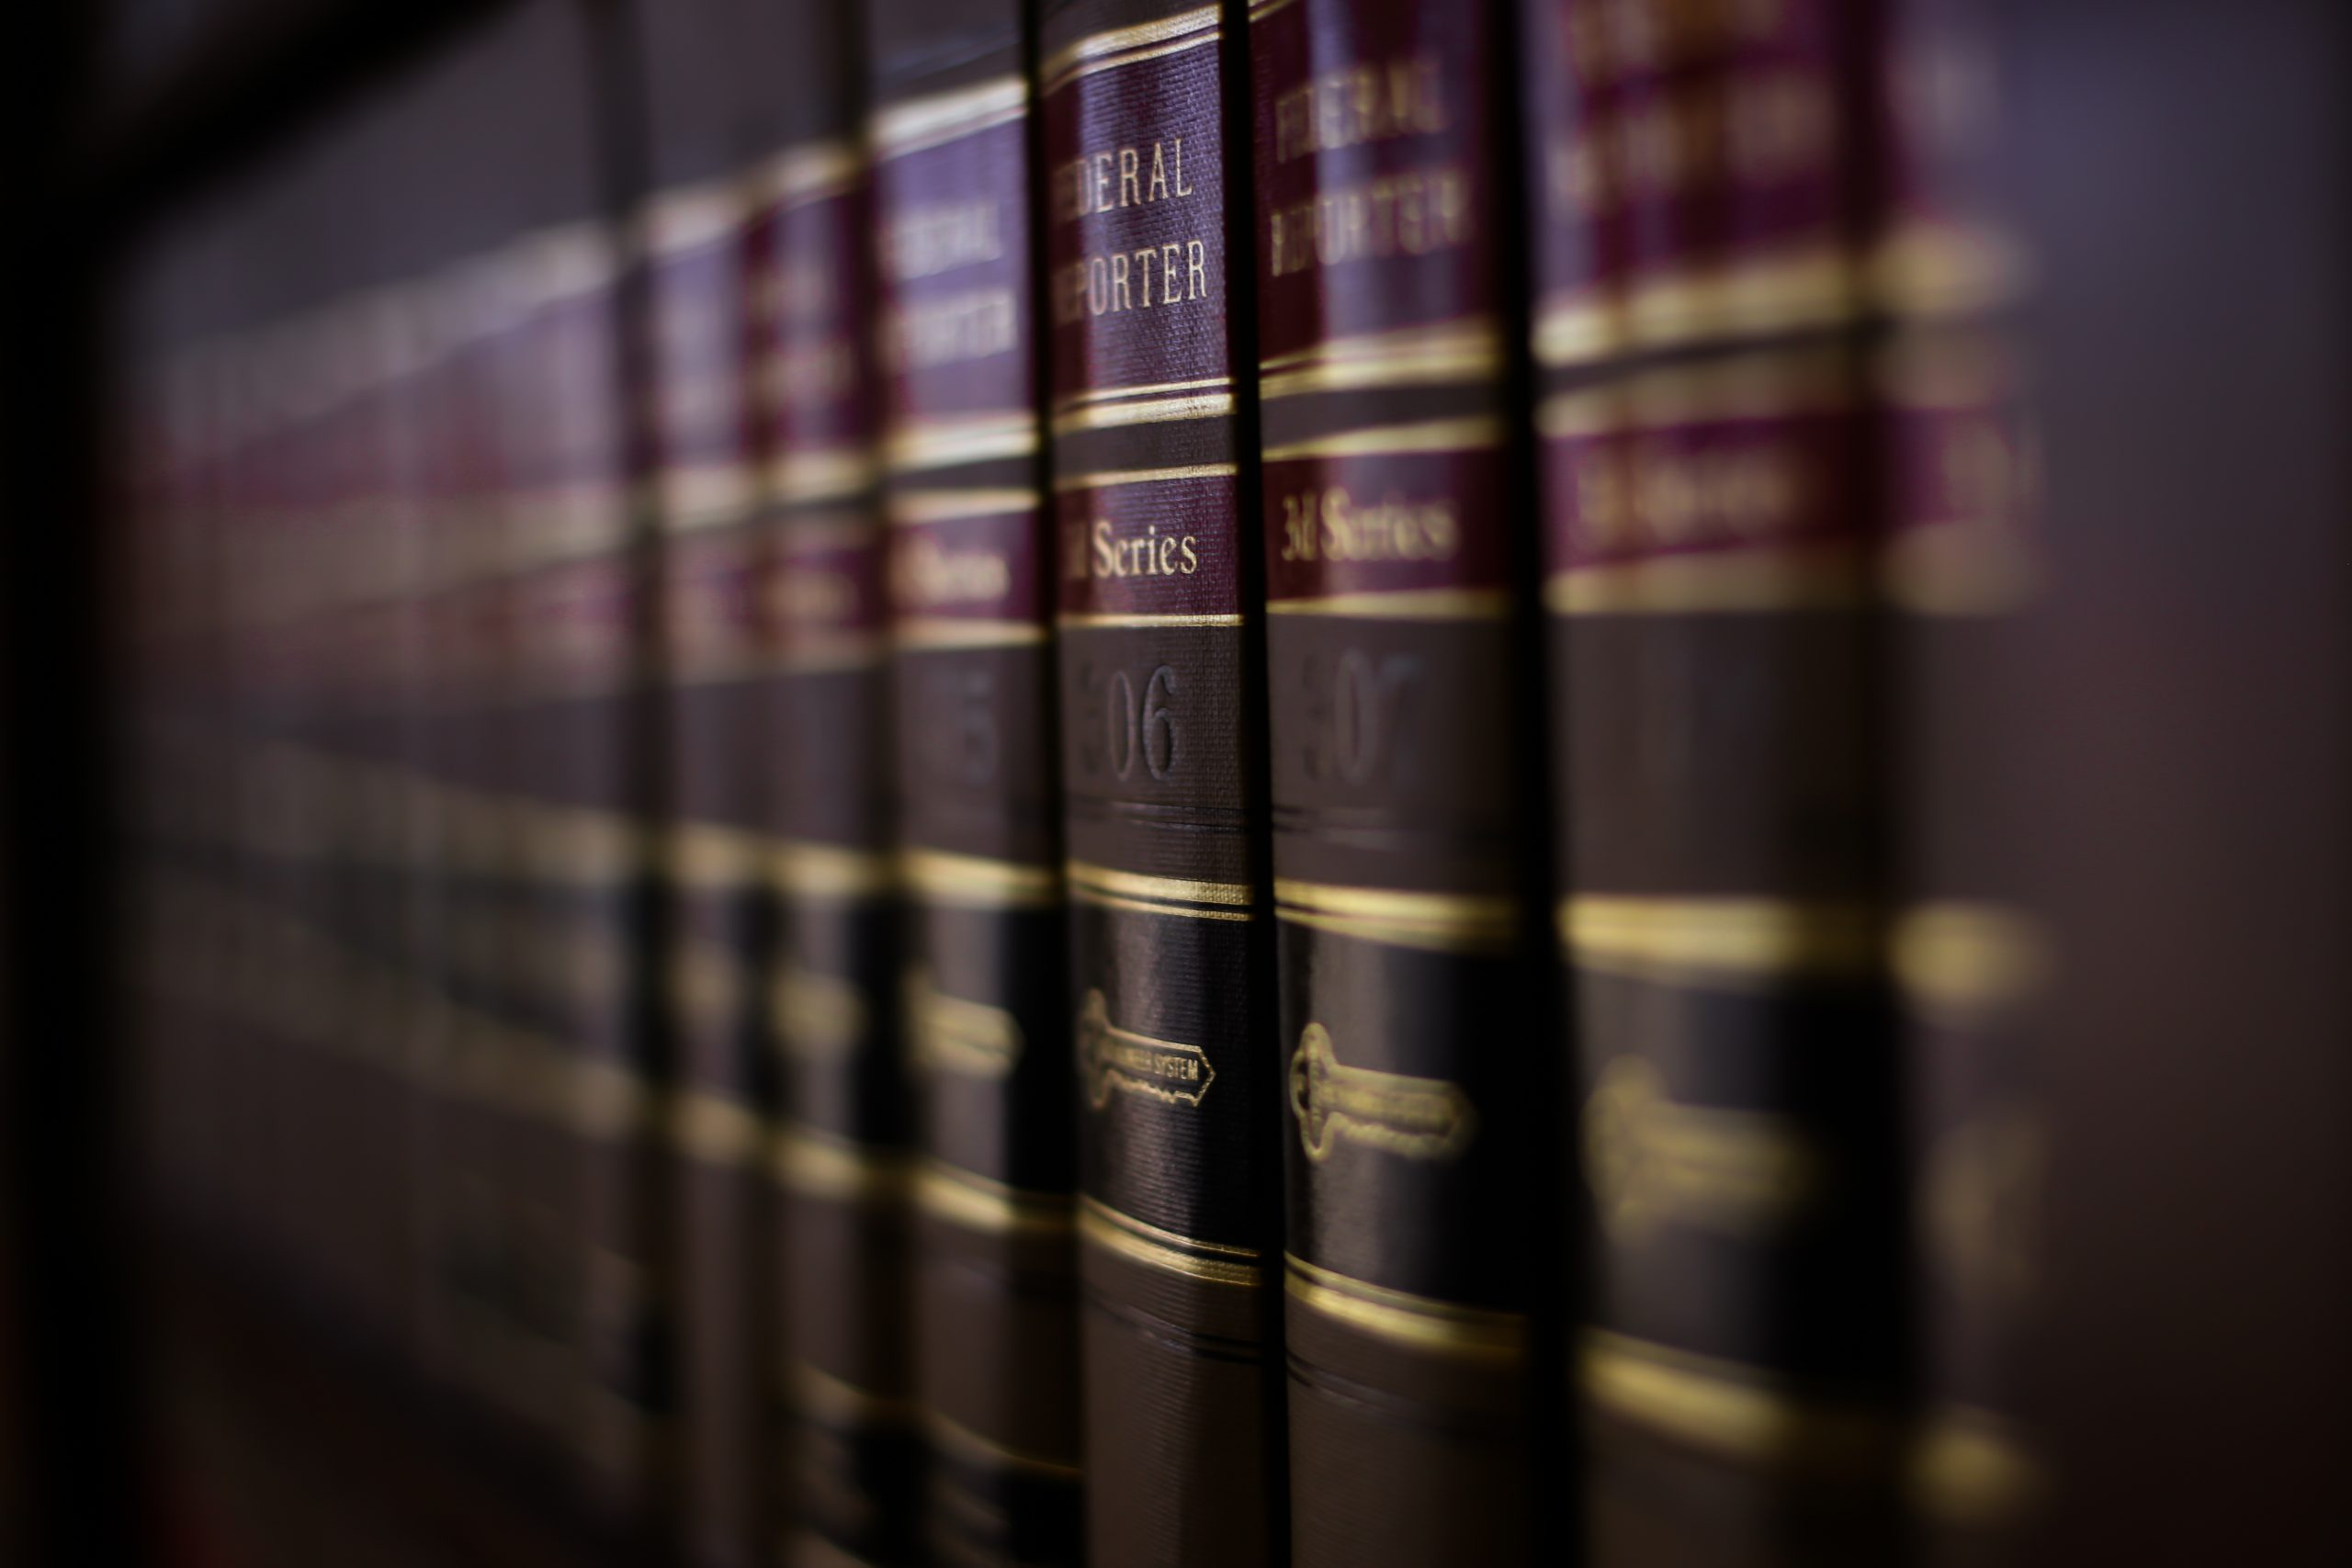 RULE CHANGE PROVIDING FOR DISCOVERY IN MISDEMEANOR CASES